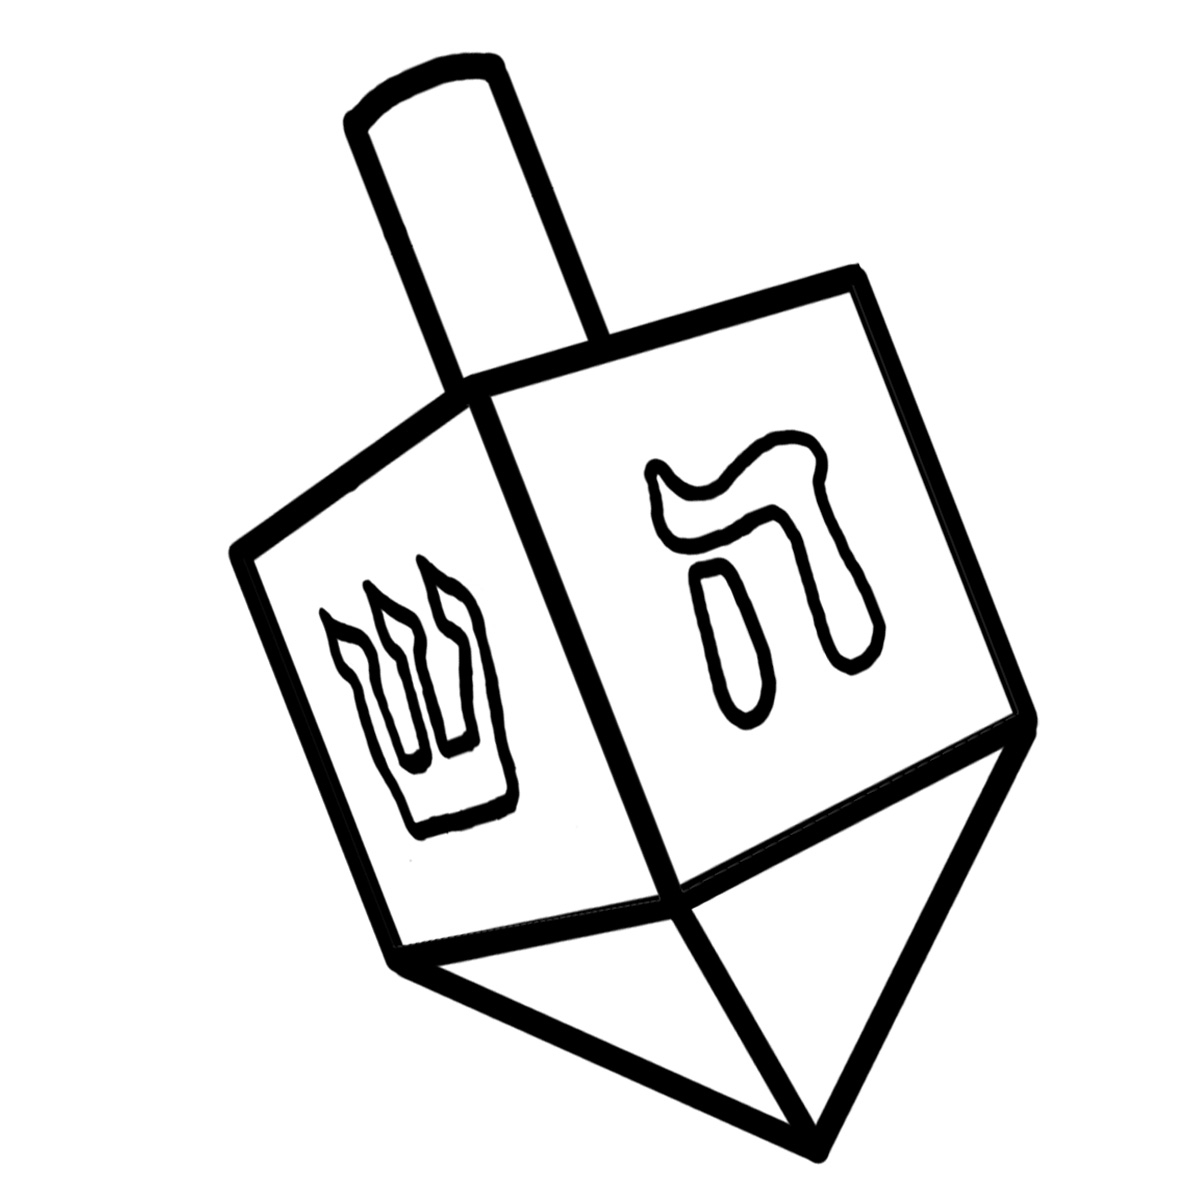 chanukah coloring pages - clip art dreidel bw hanukkah jewish holiday game